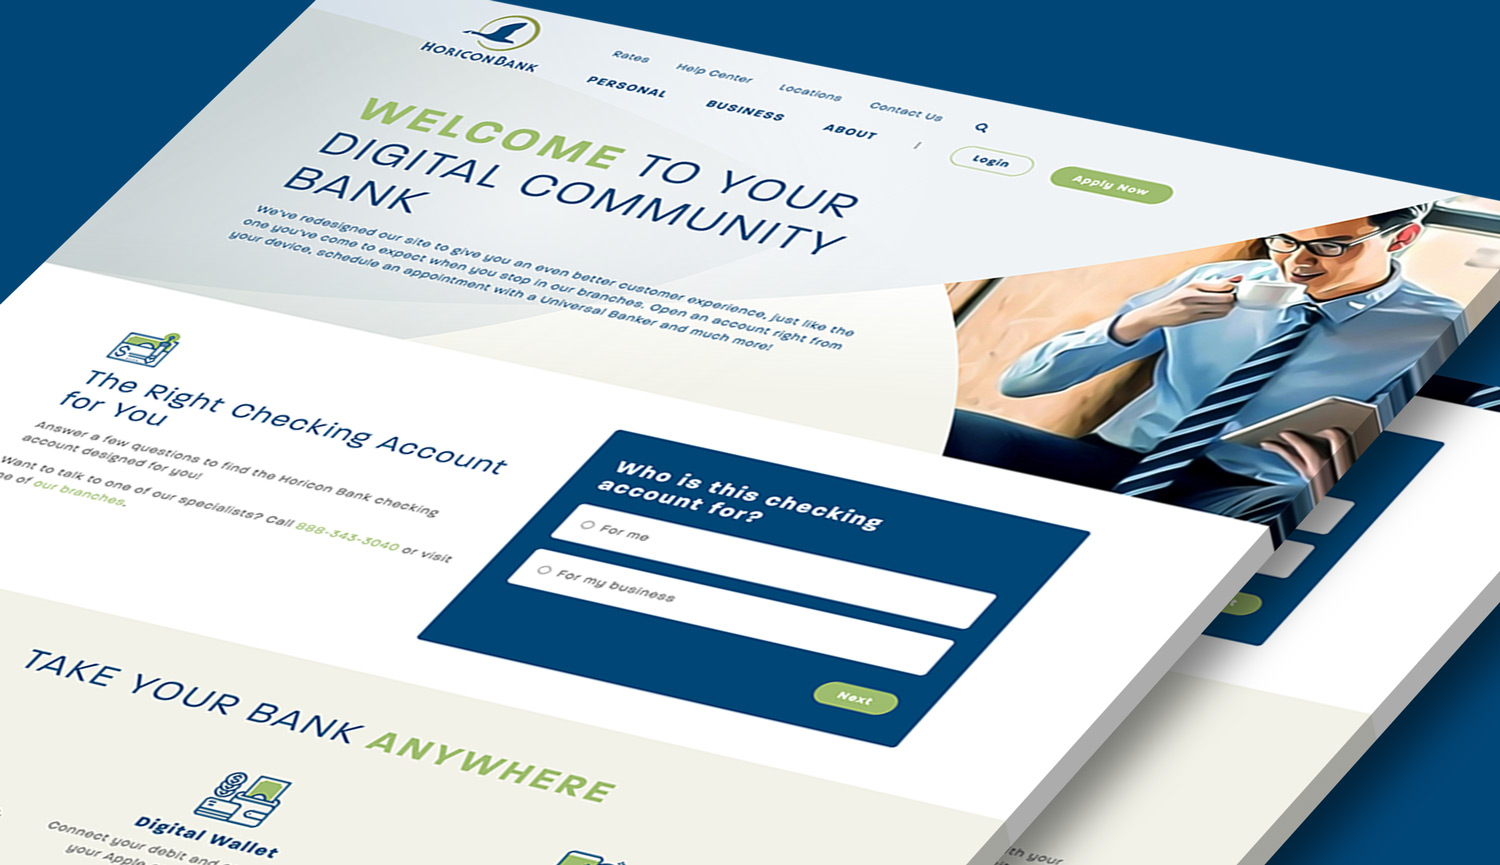 The account wizard from Horicon Bank's website